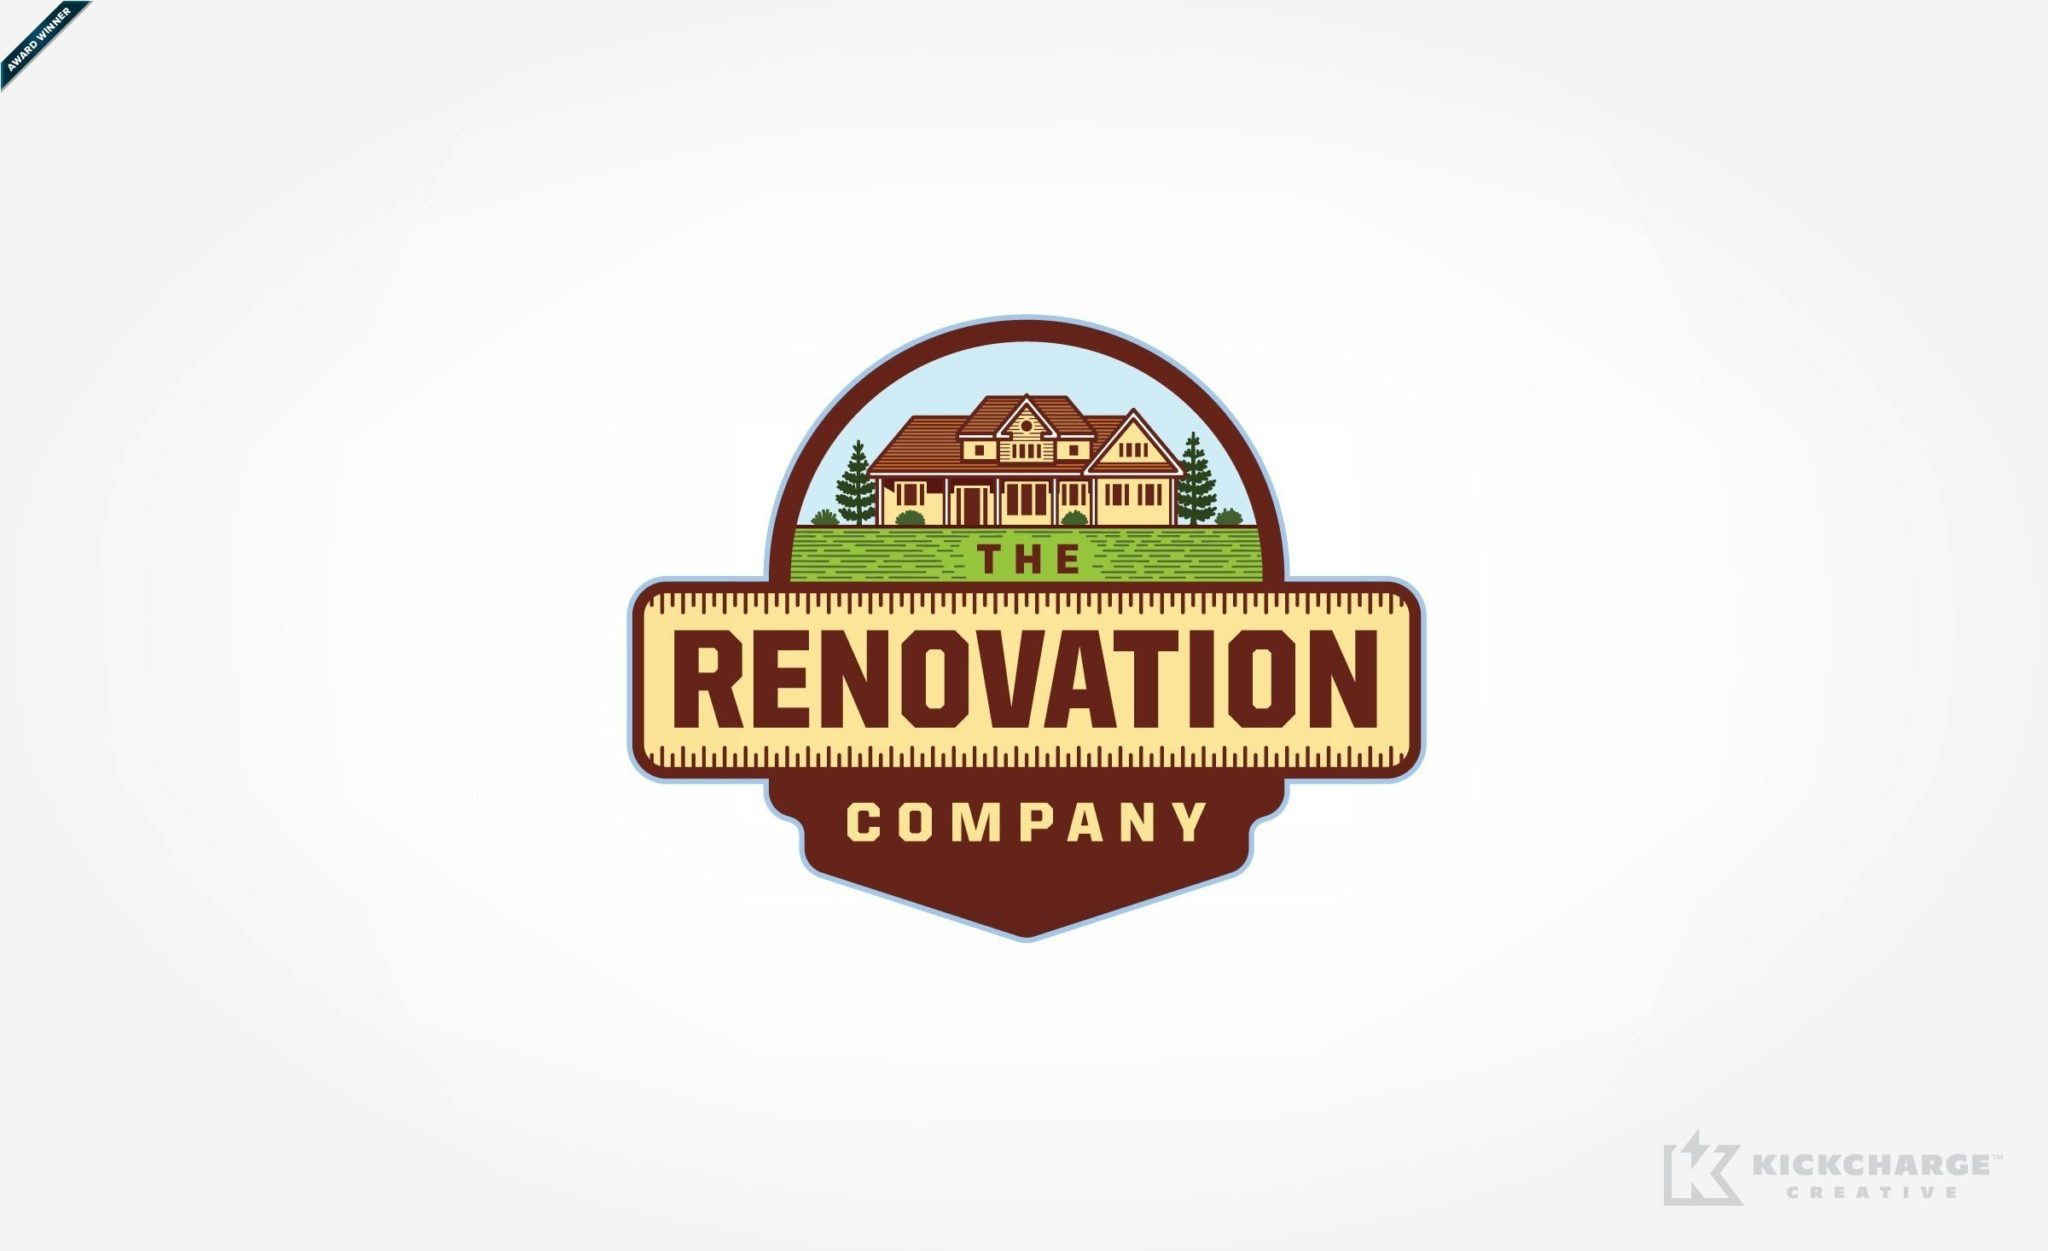 The Renovation Company Kickcharge Creative Kickcharge Creative